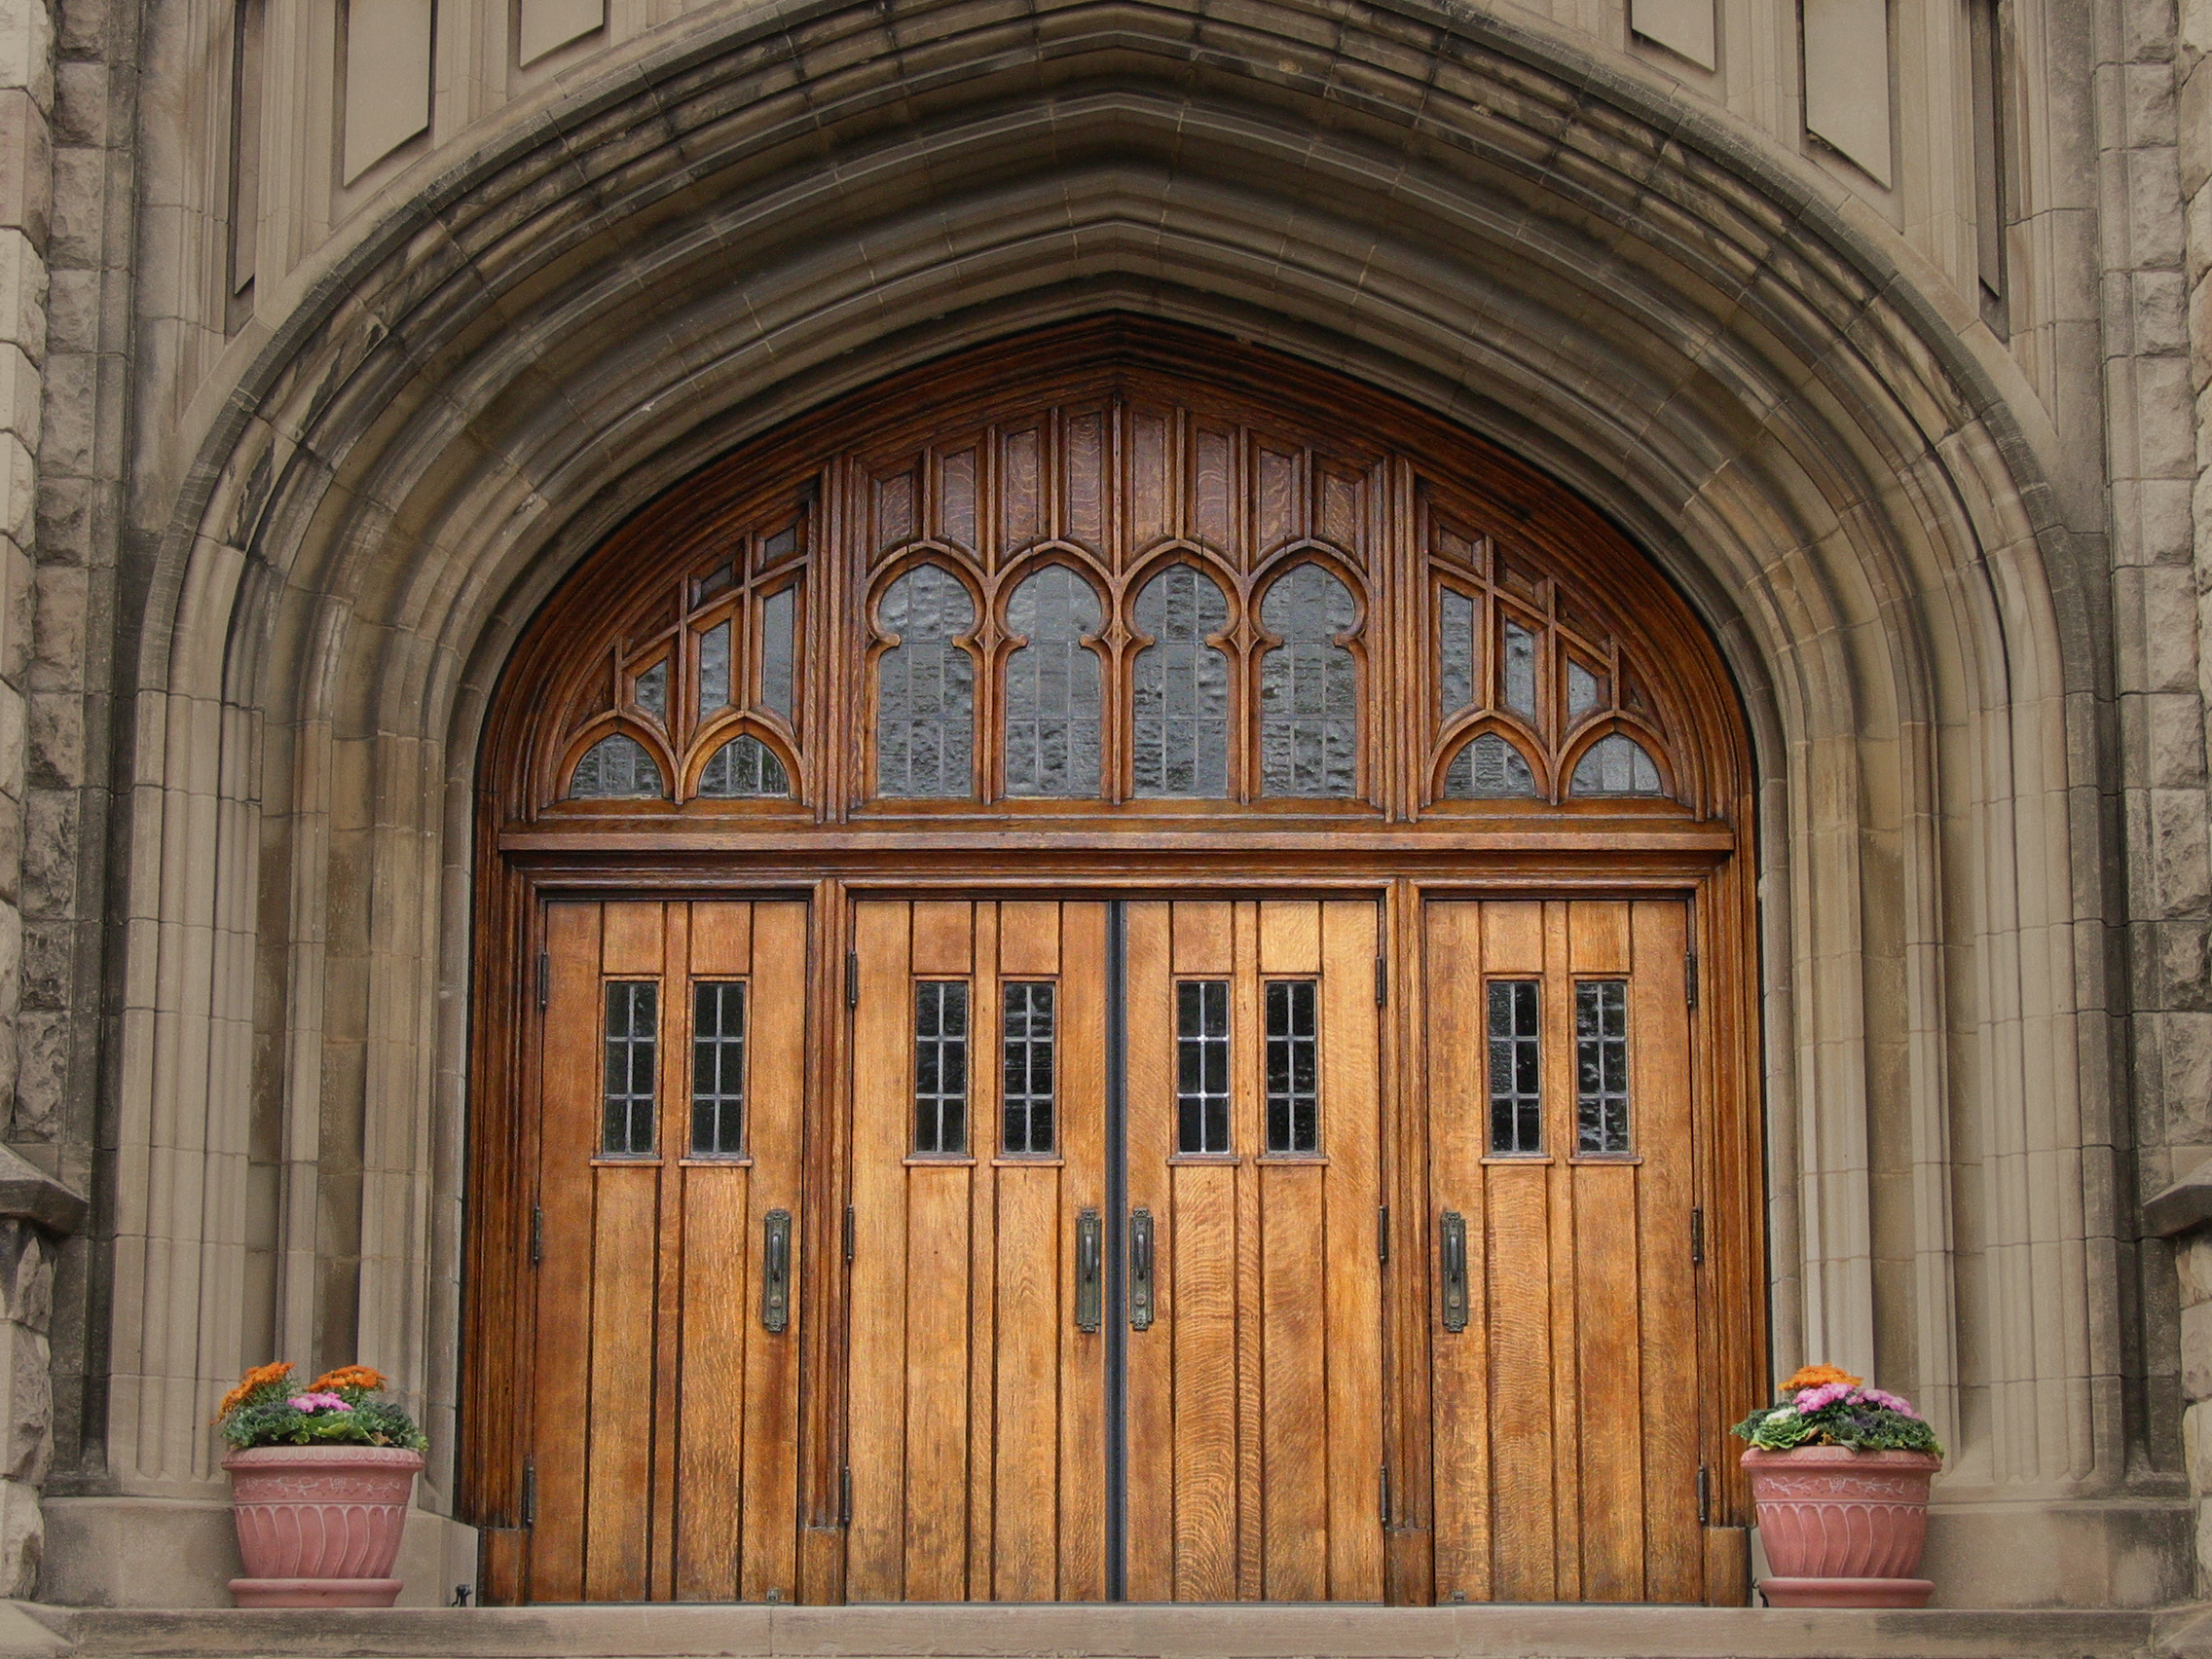 church door entrance old church architecture building photo free & Churchu0027s Entrance FREE Stock Photo Image Picture: Old Church ...